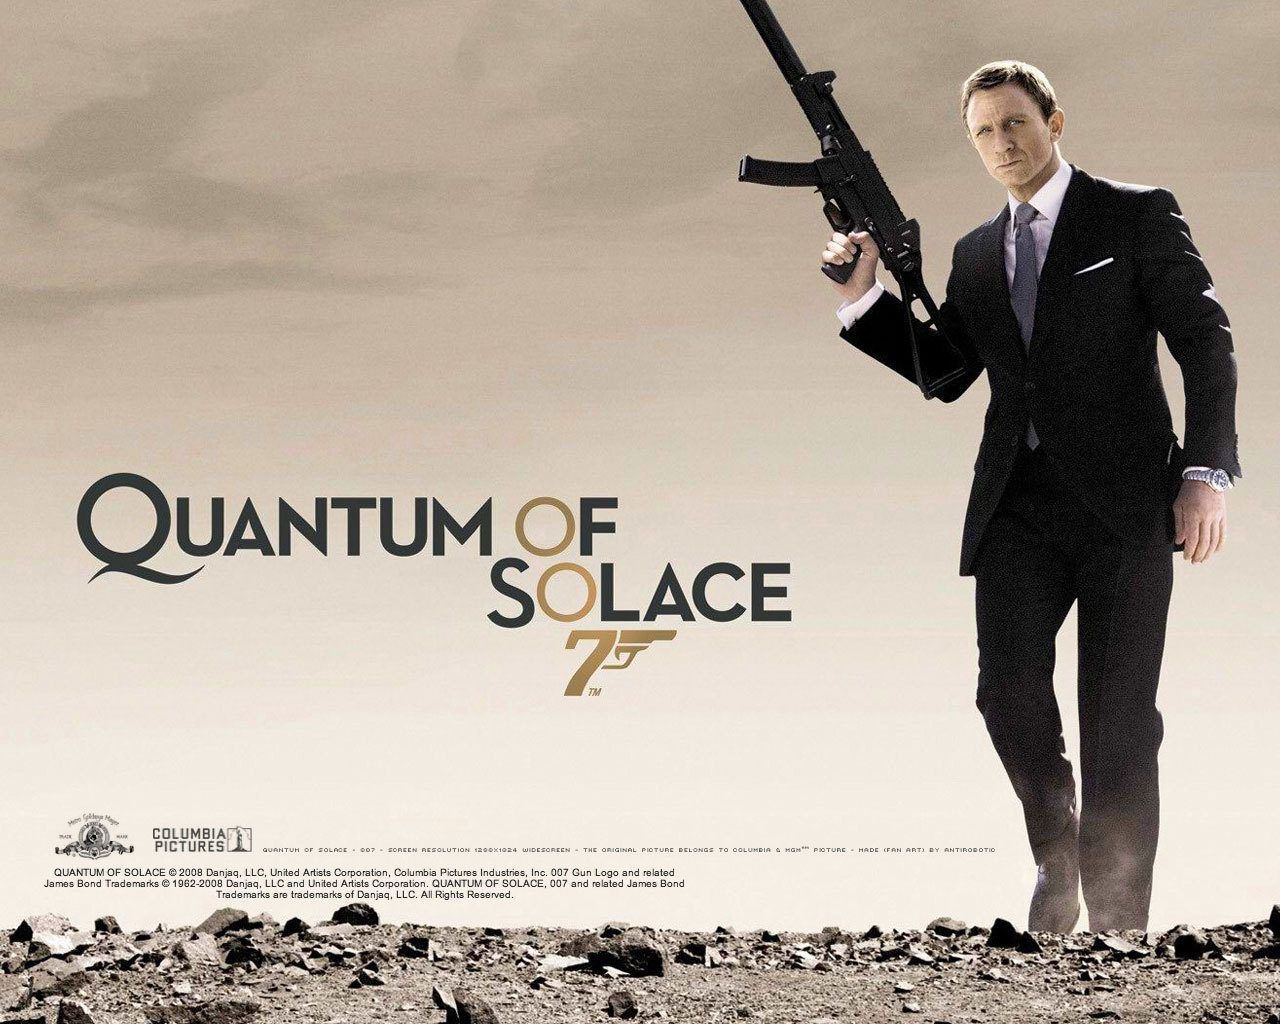 quantum-of-solace-james-bond-9614441-1280-1024